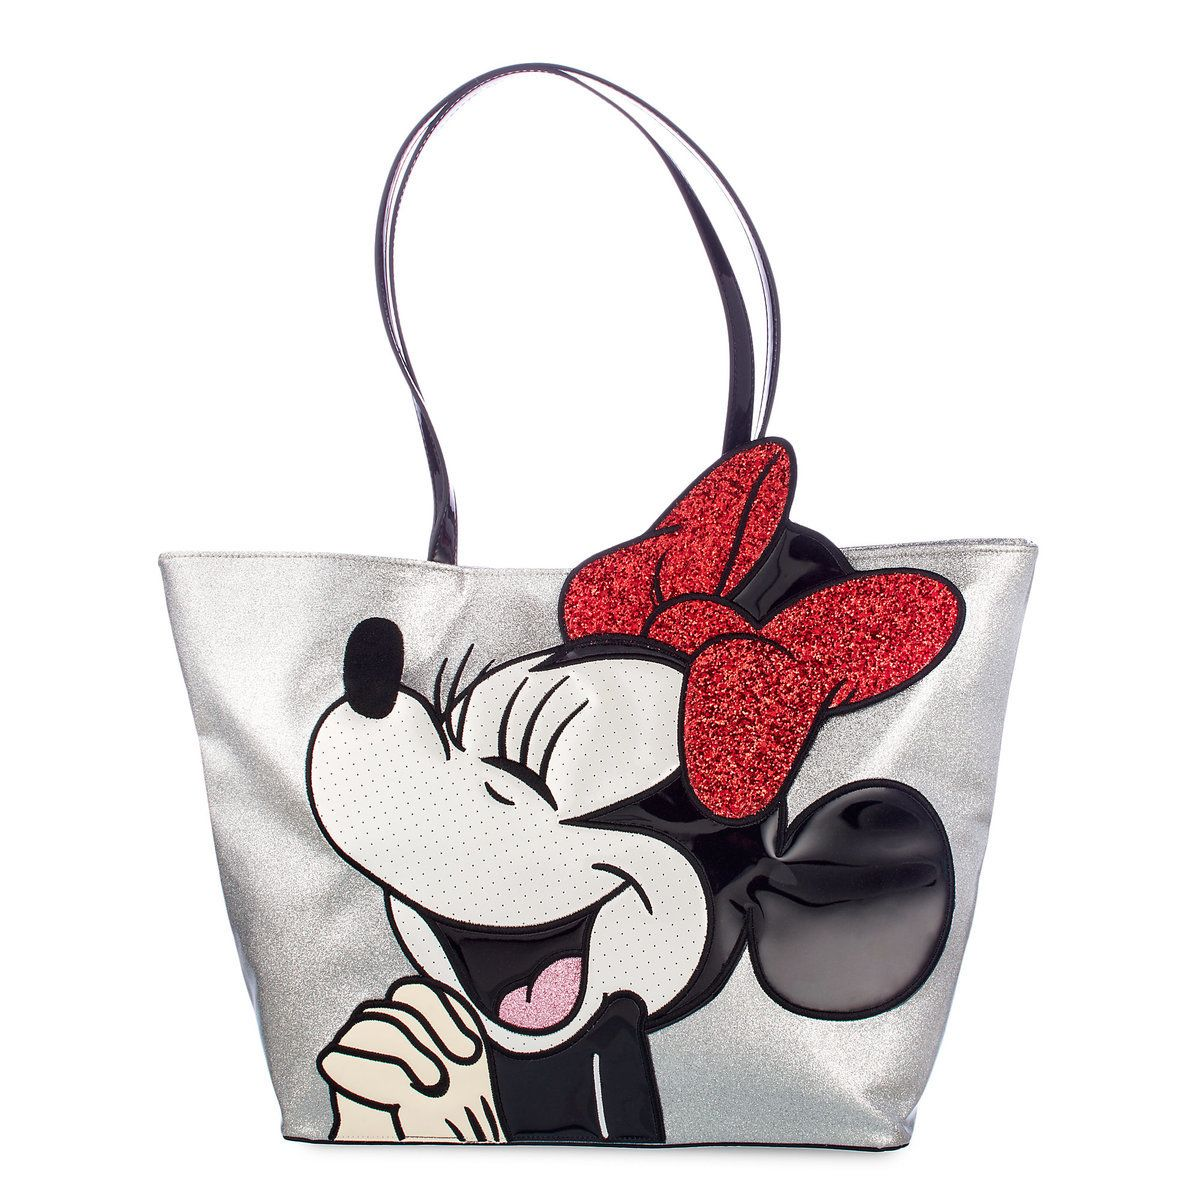 Items With Dots To Rock The Favorite MouseDisney Minnie Our qARL3jc54